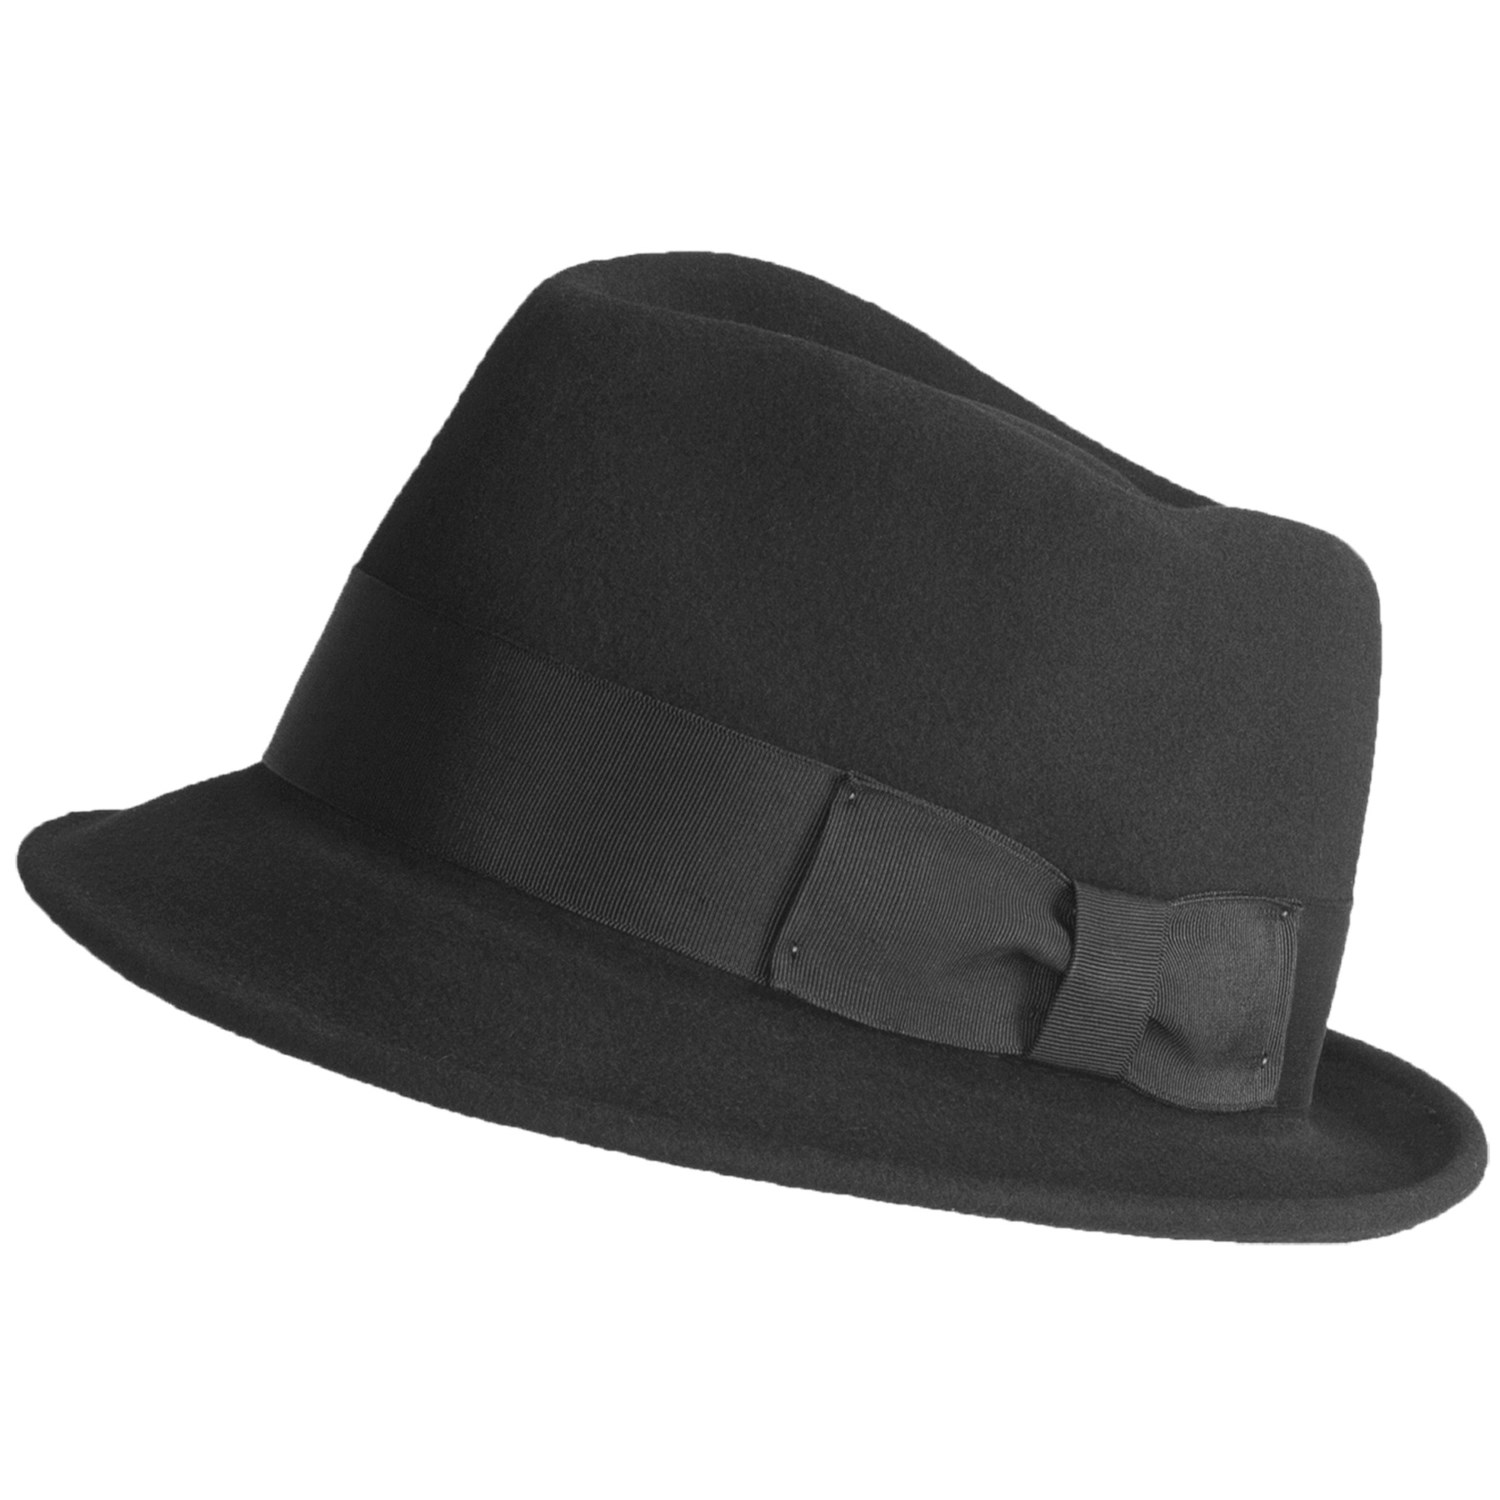 Shop eBay for great deals on Black Hats for Men. You'll find new or used products in Black Hats for Men on eBay. Free shipping on selected items.